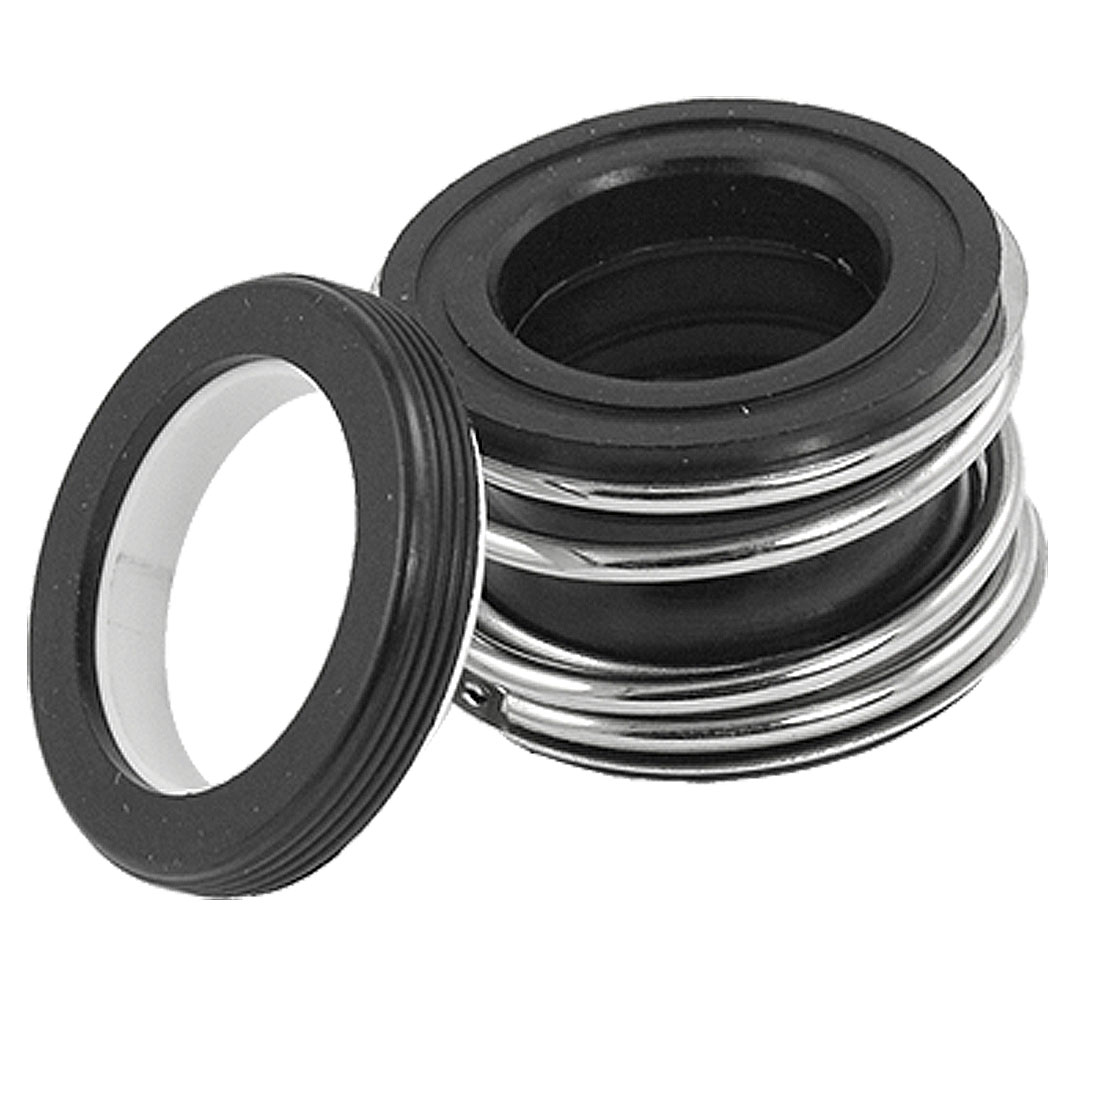 Rubber Bellows 28mm Mechanical Shaft Seal for Water Pumps